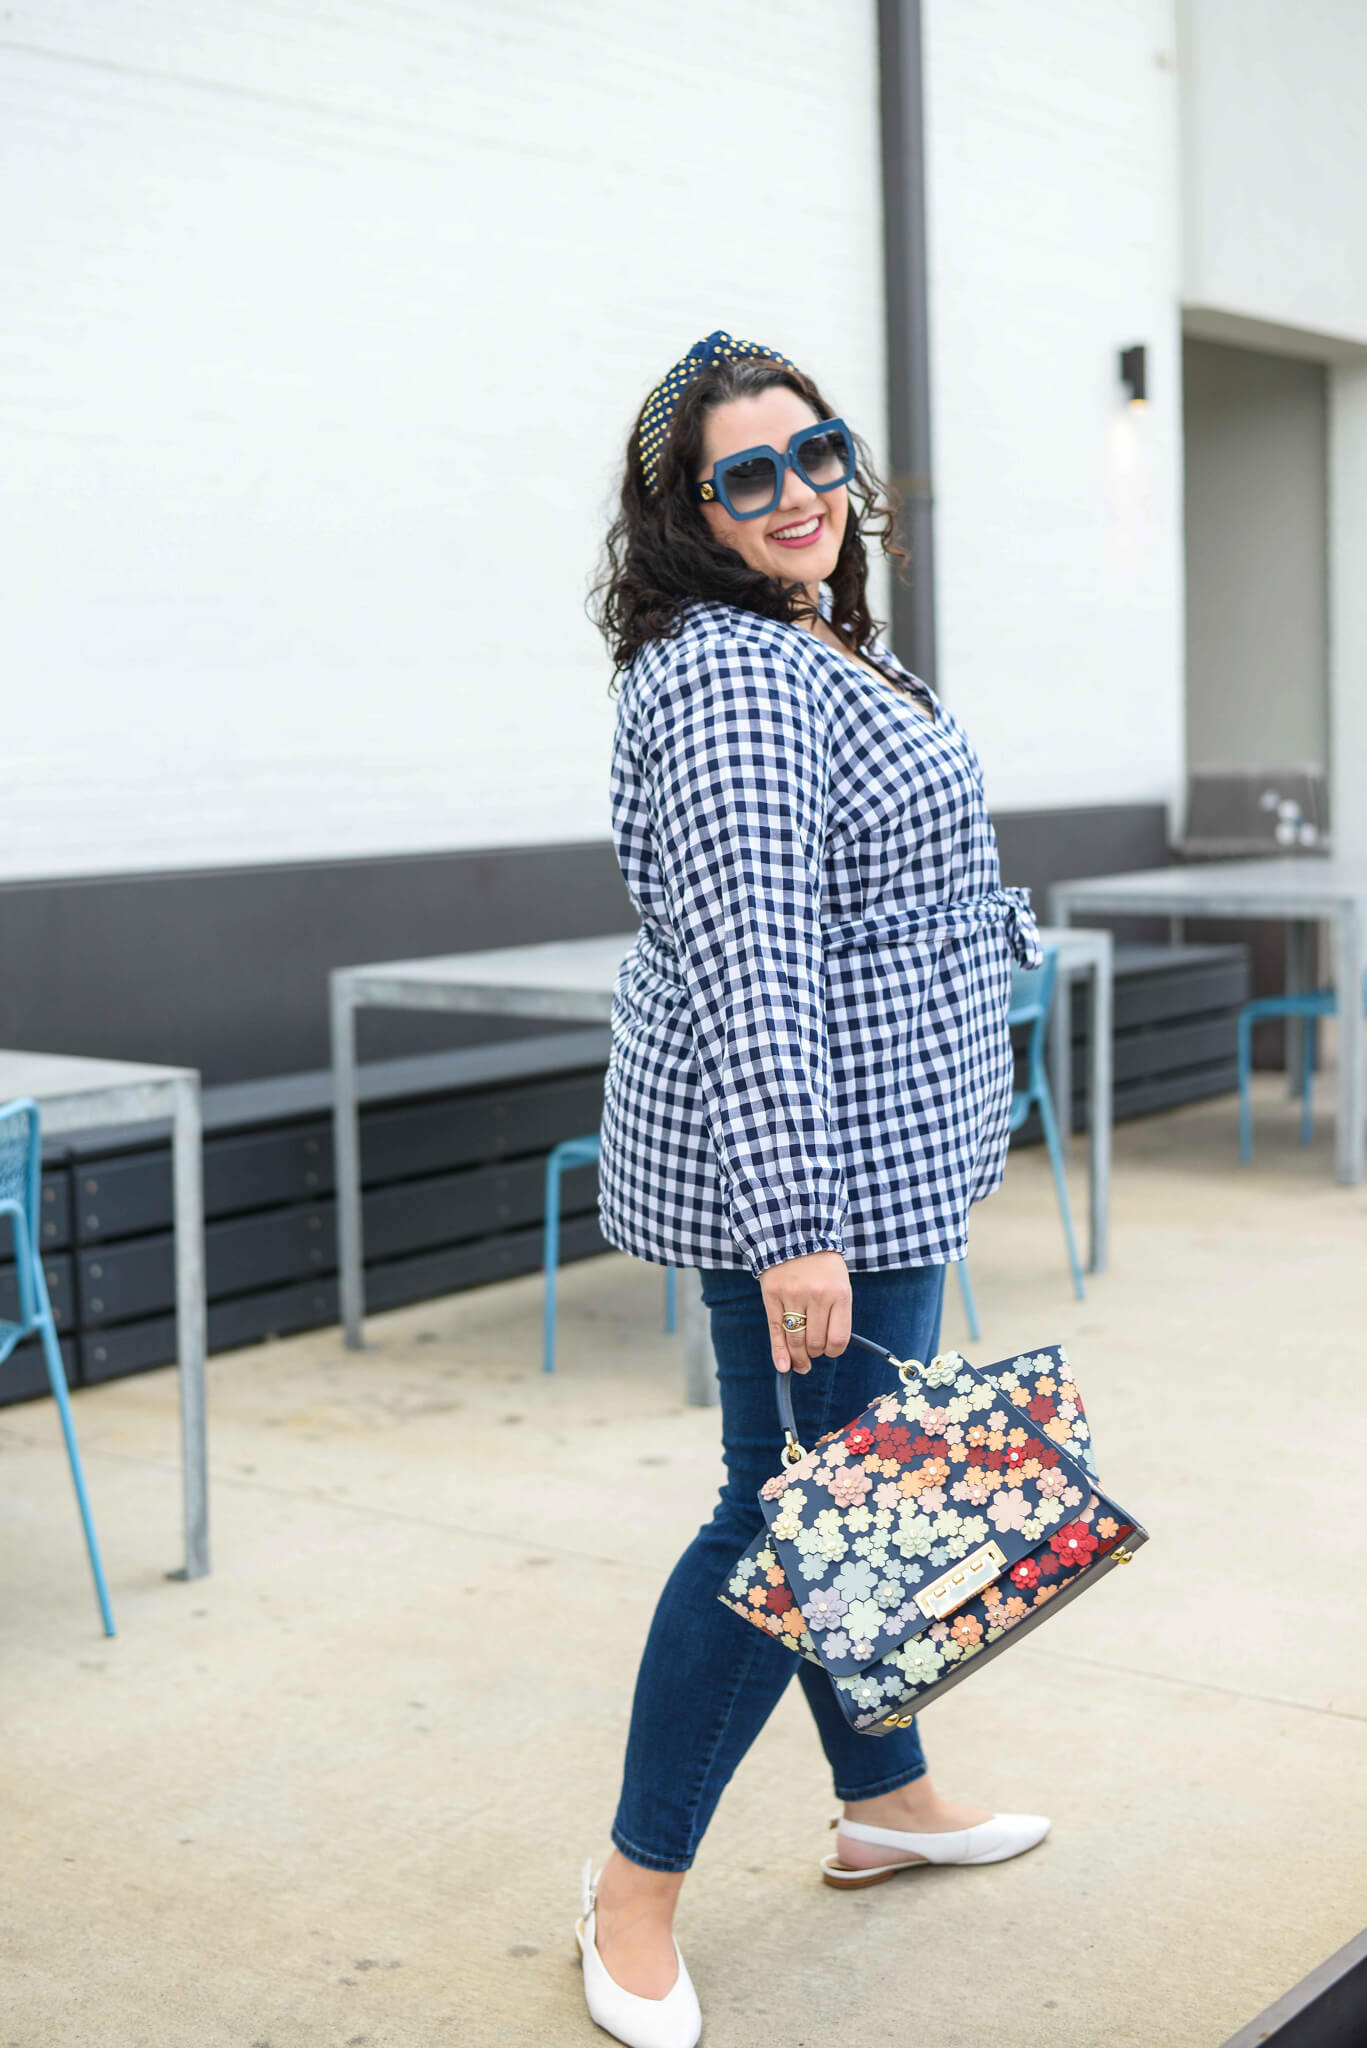 The perfect preppy fall transition outfit includes a navy and white plus size gingham top, skinny jeans and embellished headband